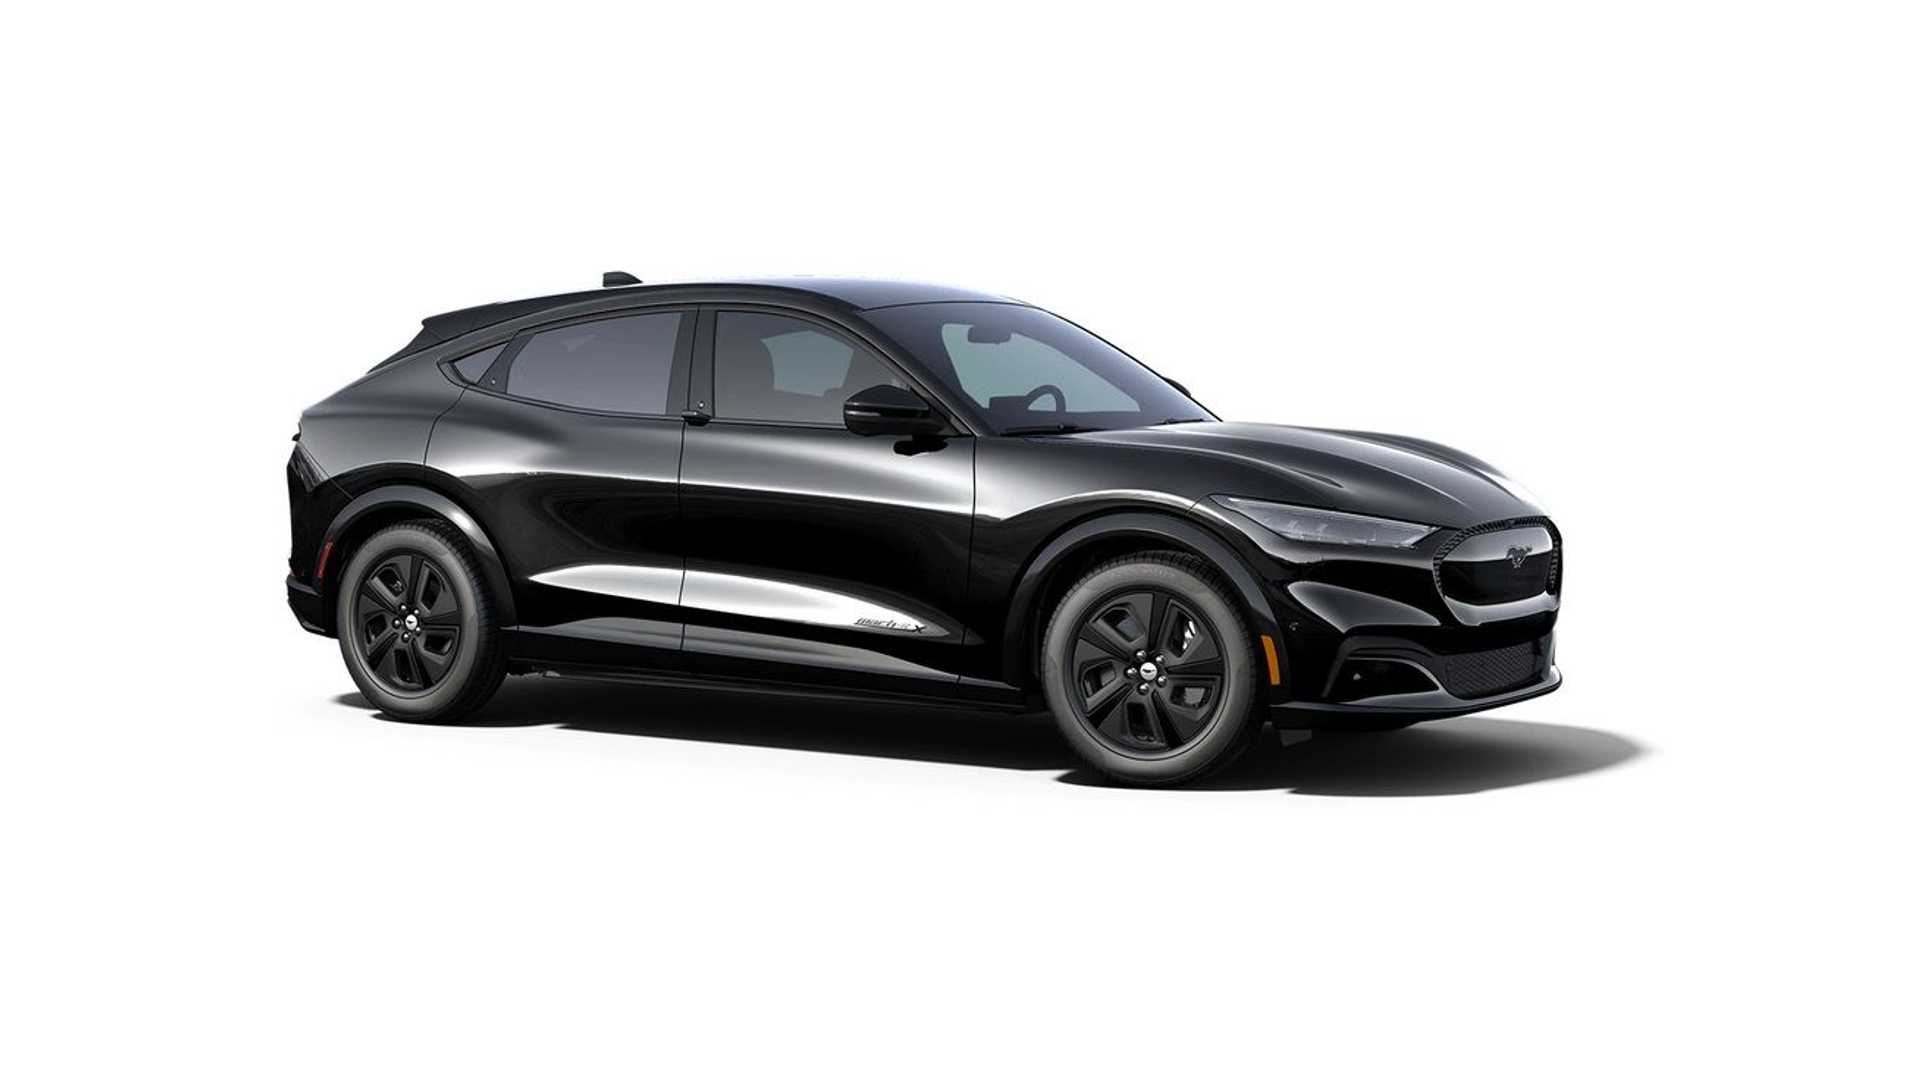 Ford Mustang Mach-E California Route 1 EPA Range/Efficiency Rating